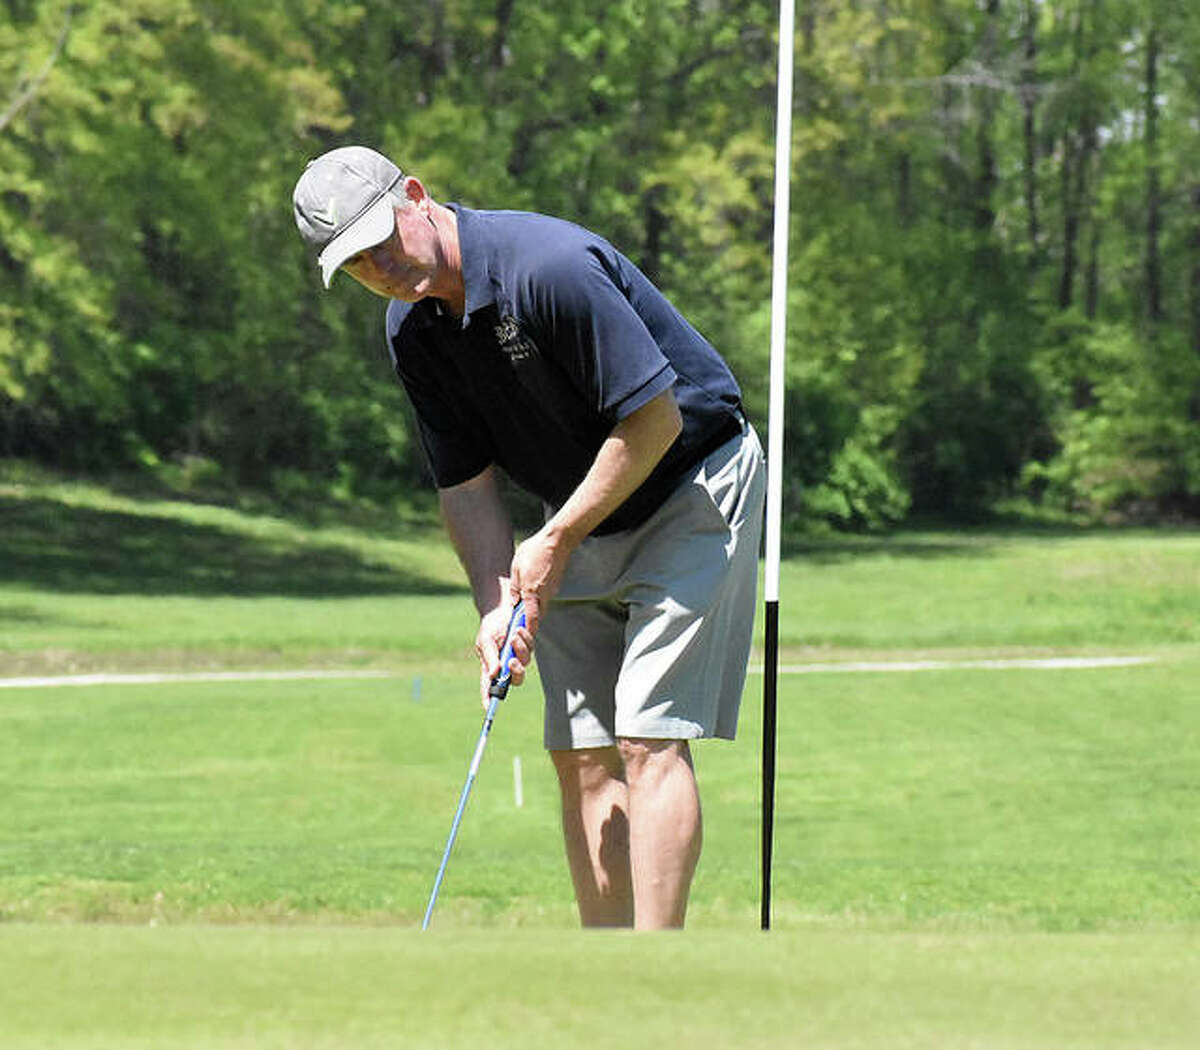 Edwardsville resident Dave Wasmuth reacts to his putt on the No. 9 hole at Oak Brook Golf Club on Friday.